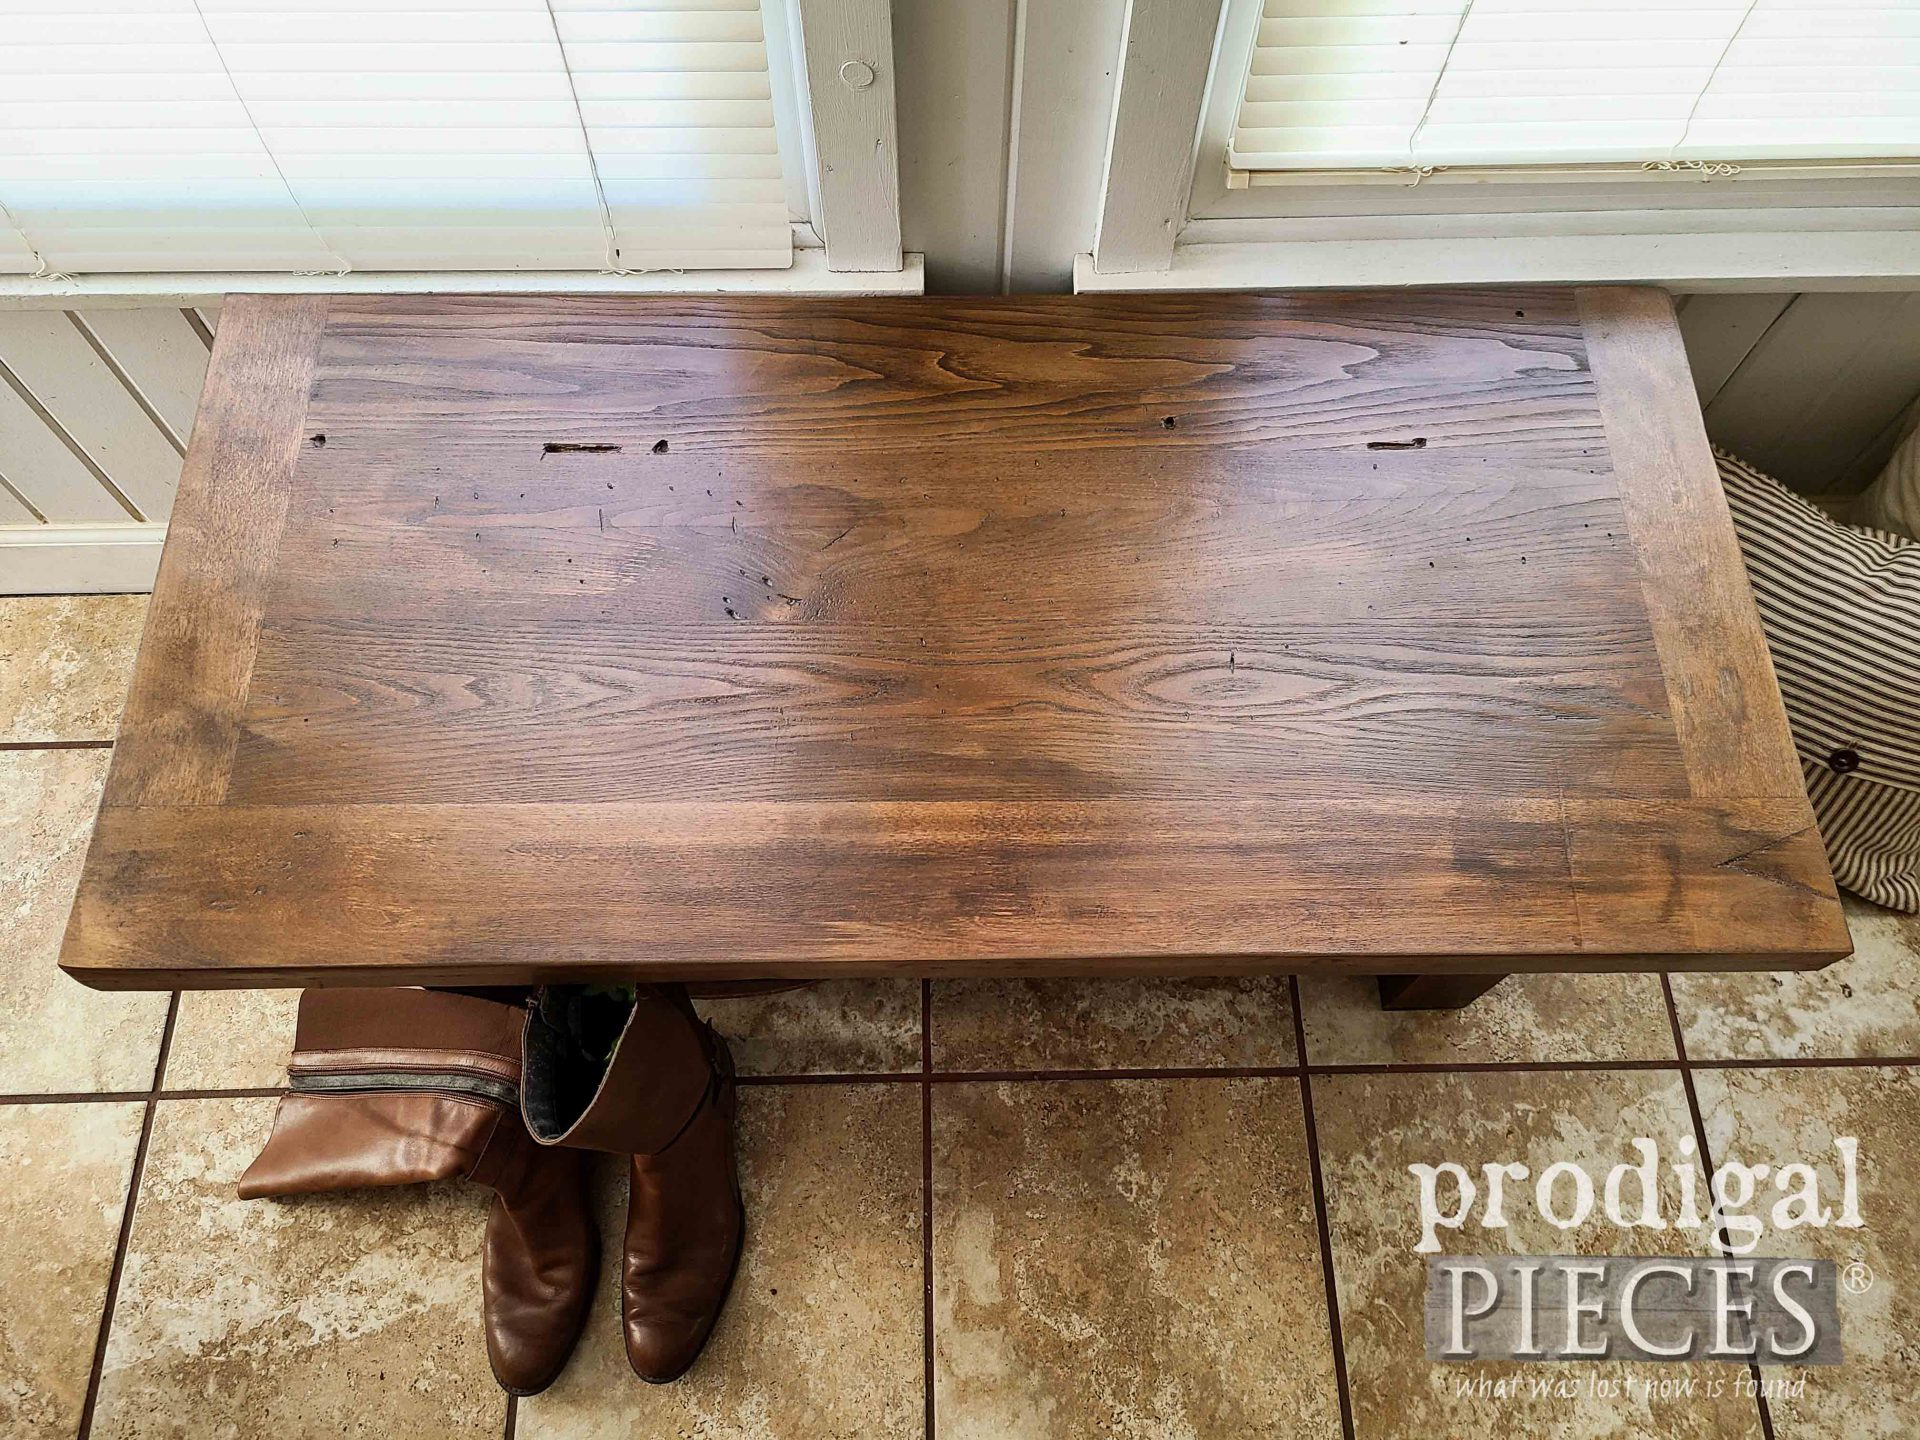 Upcycled Dresser Top Bench Built by Larissa of Prodigal Pieces   prodigalpieces.com #prodigalpieces #reclaimed #home #furniture